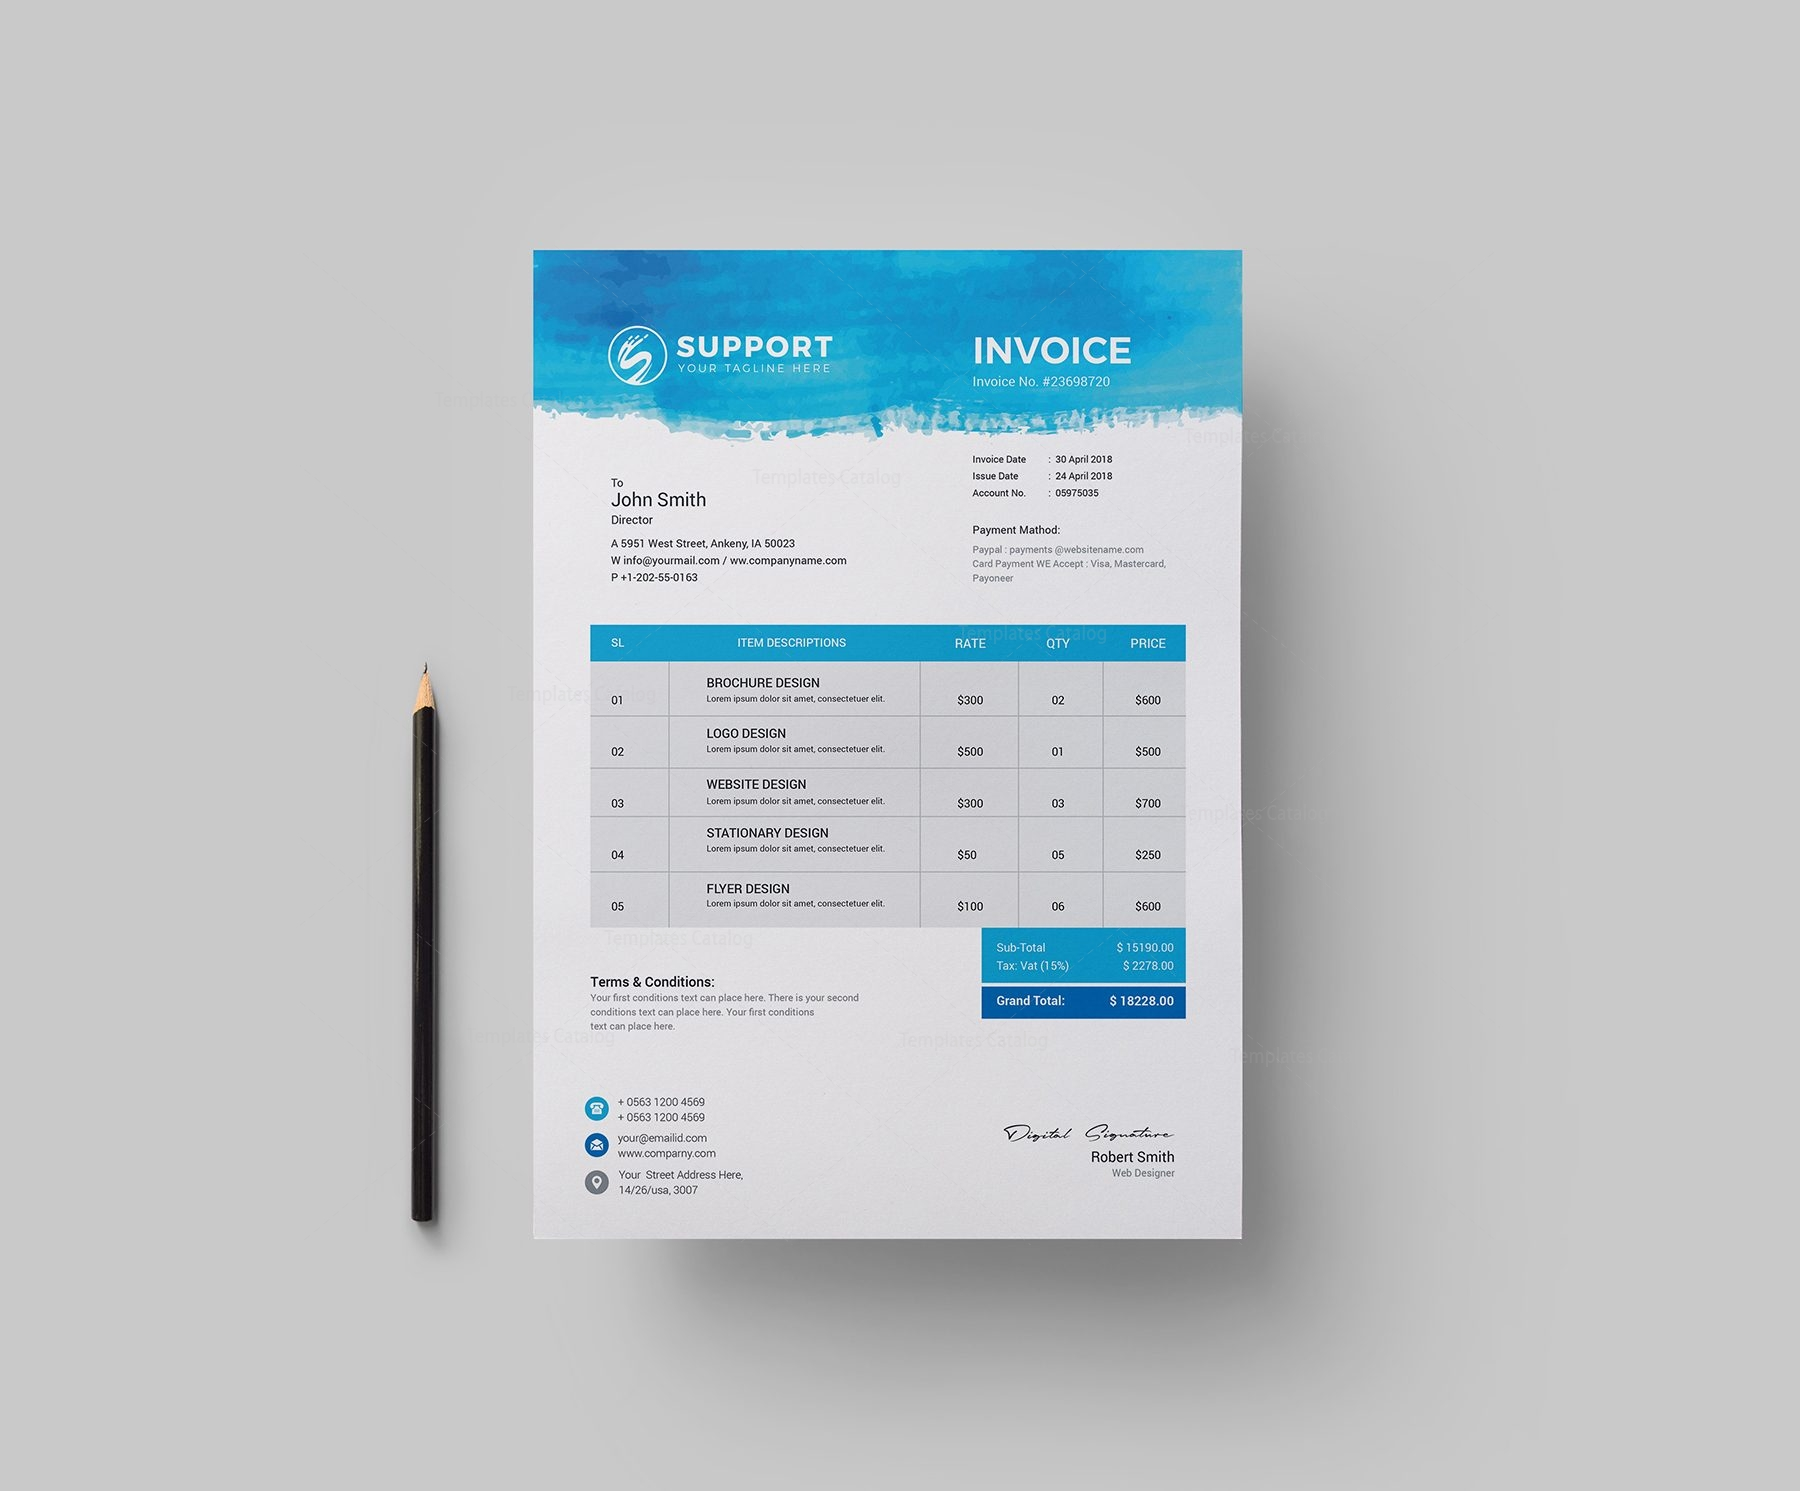 Serenity Corporate Invoice Design Template 002153 Template Catalog